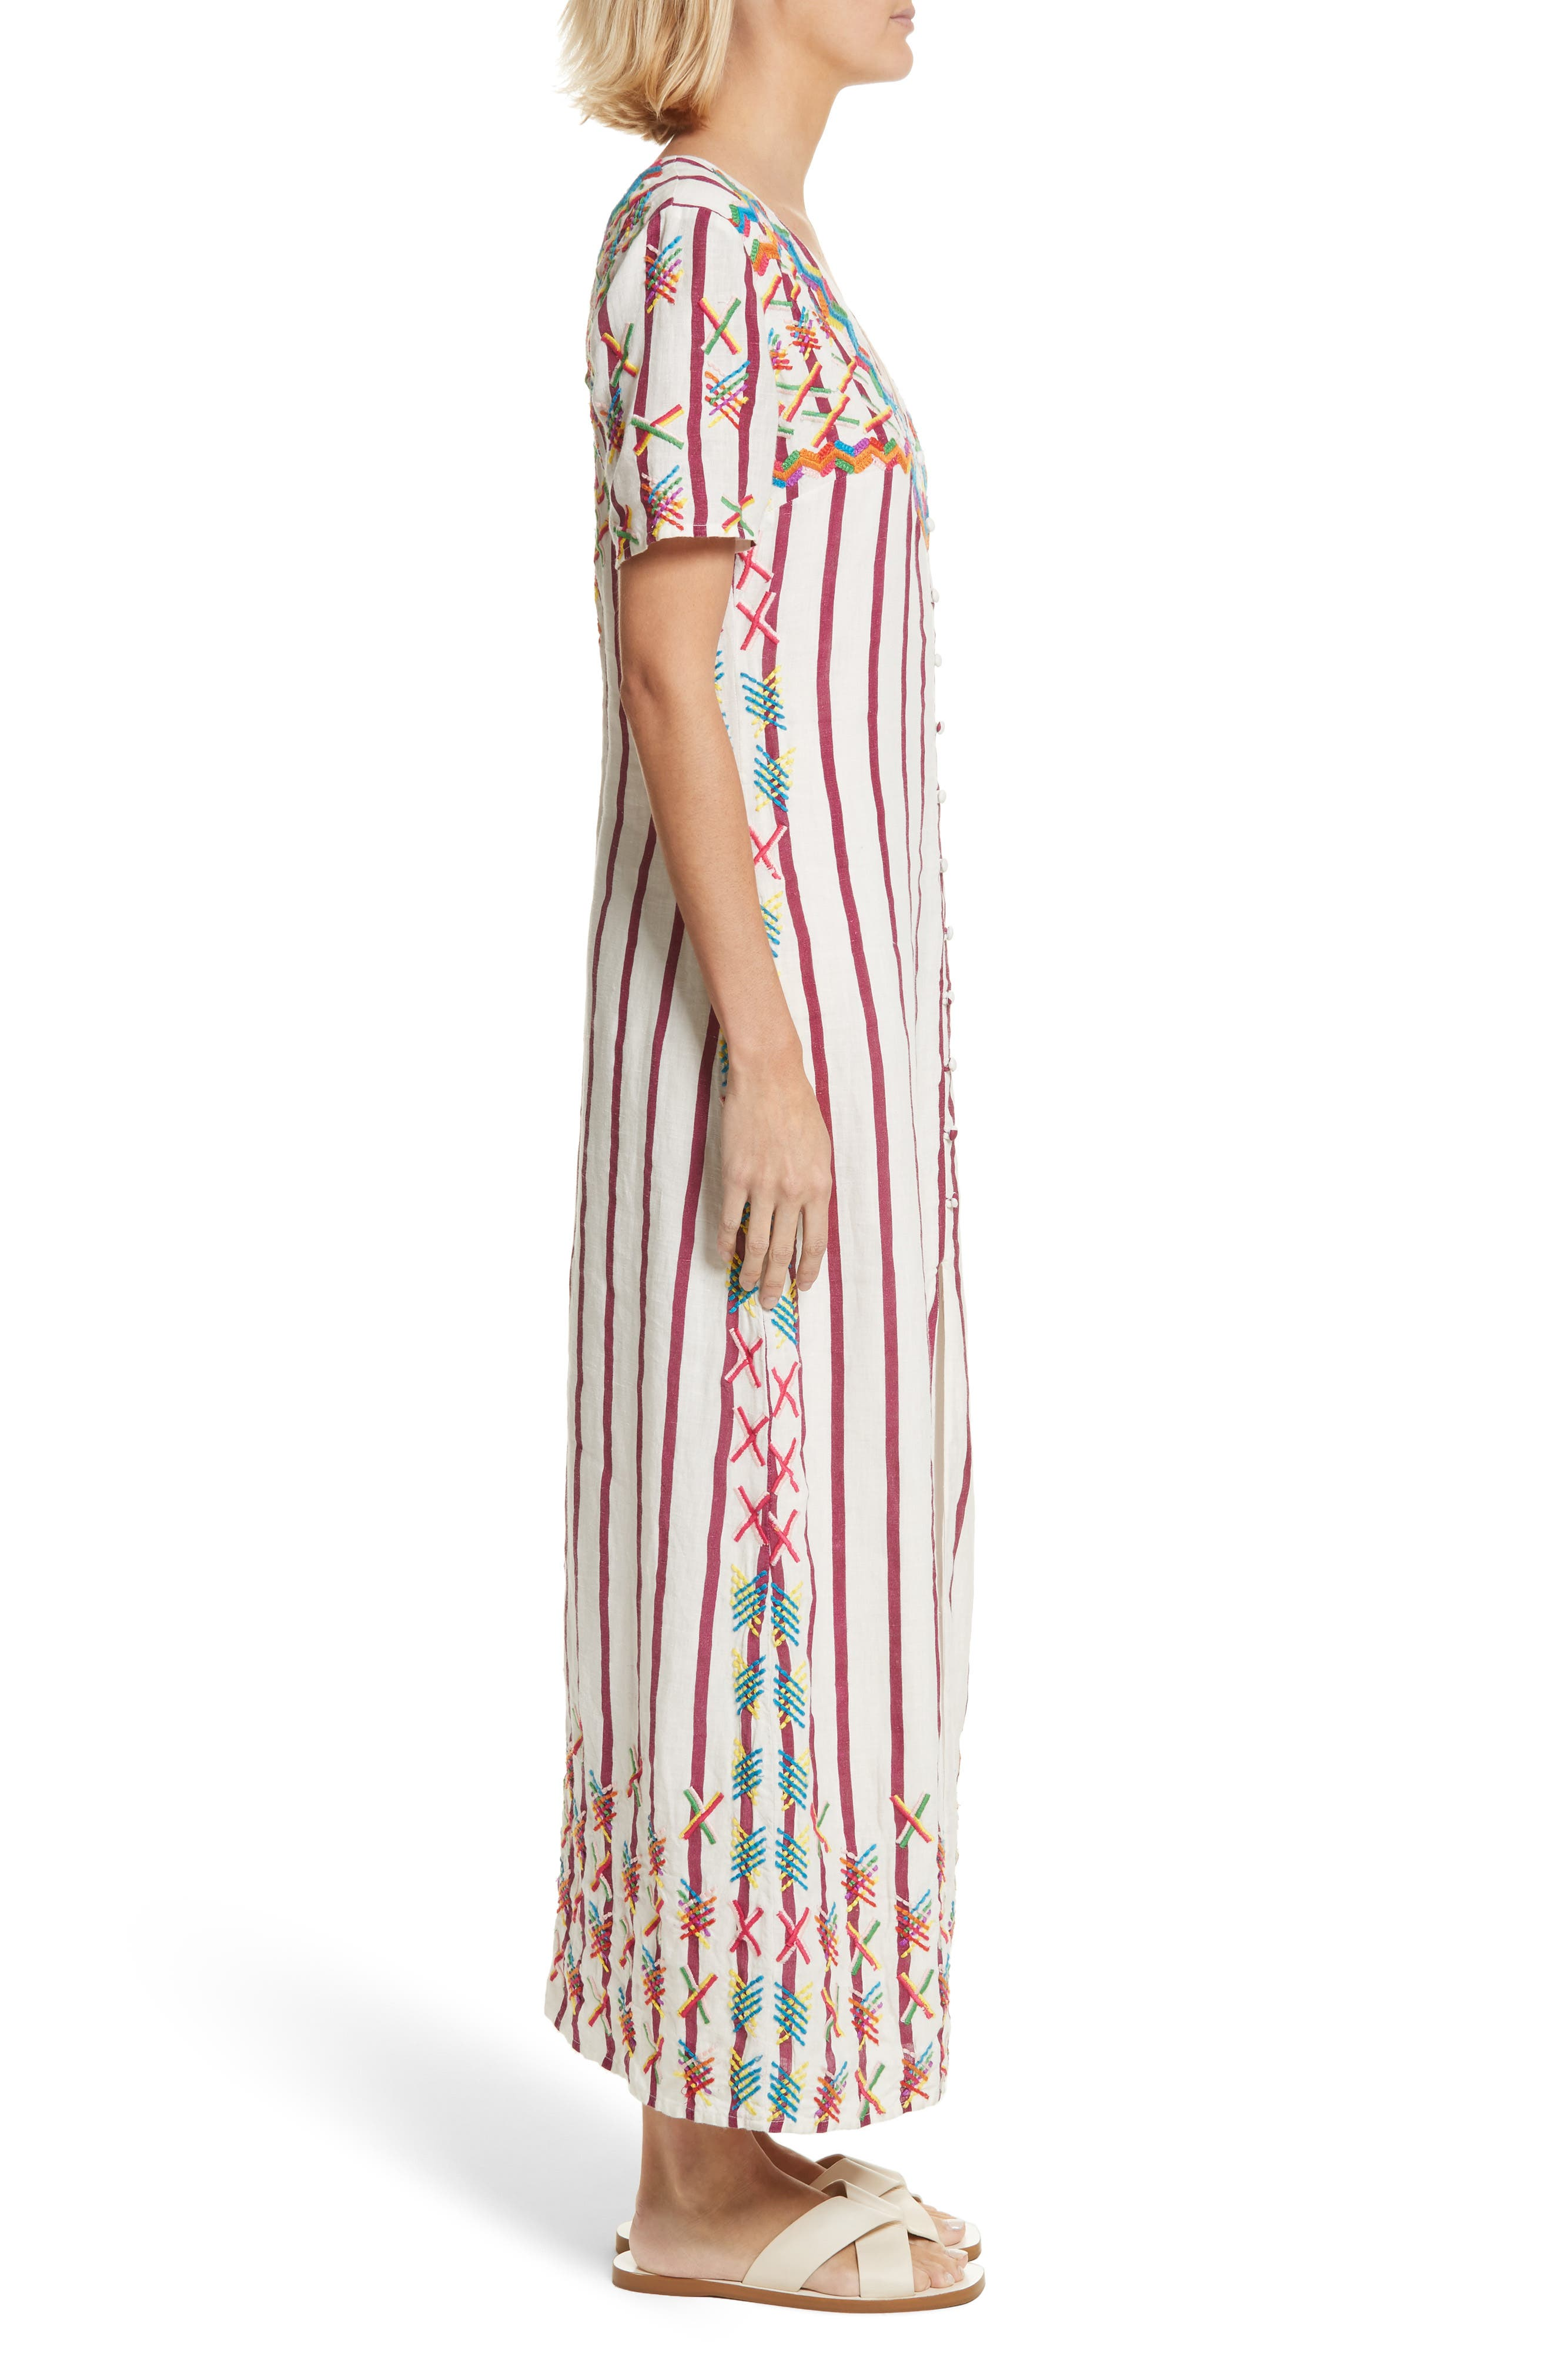 Maria Embroidered Maxi Dress,                             Alternate thumbnail 3, color,                             Off White/ Burgundy